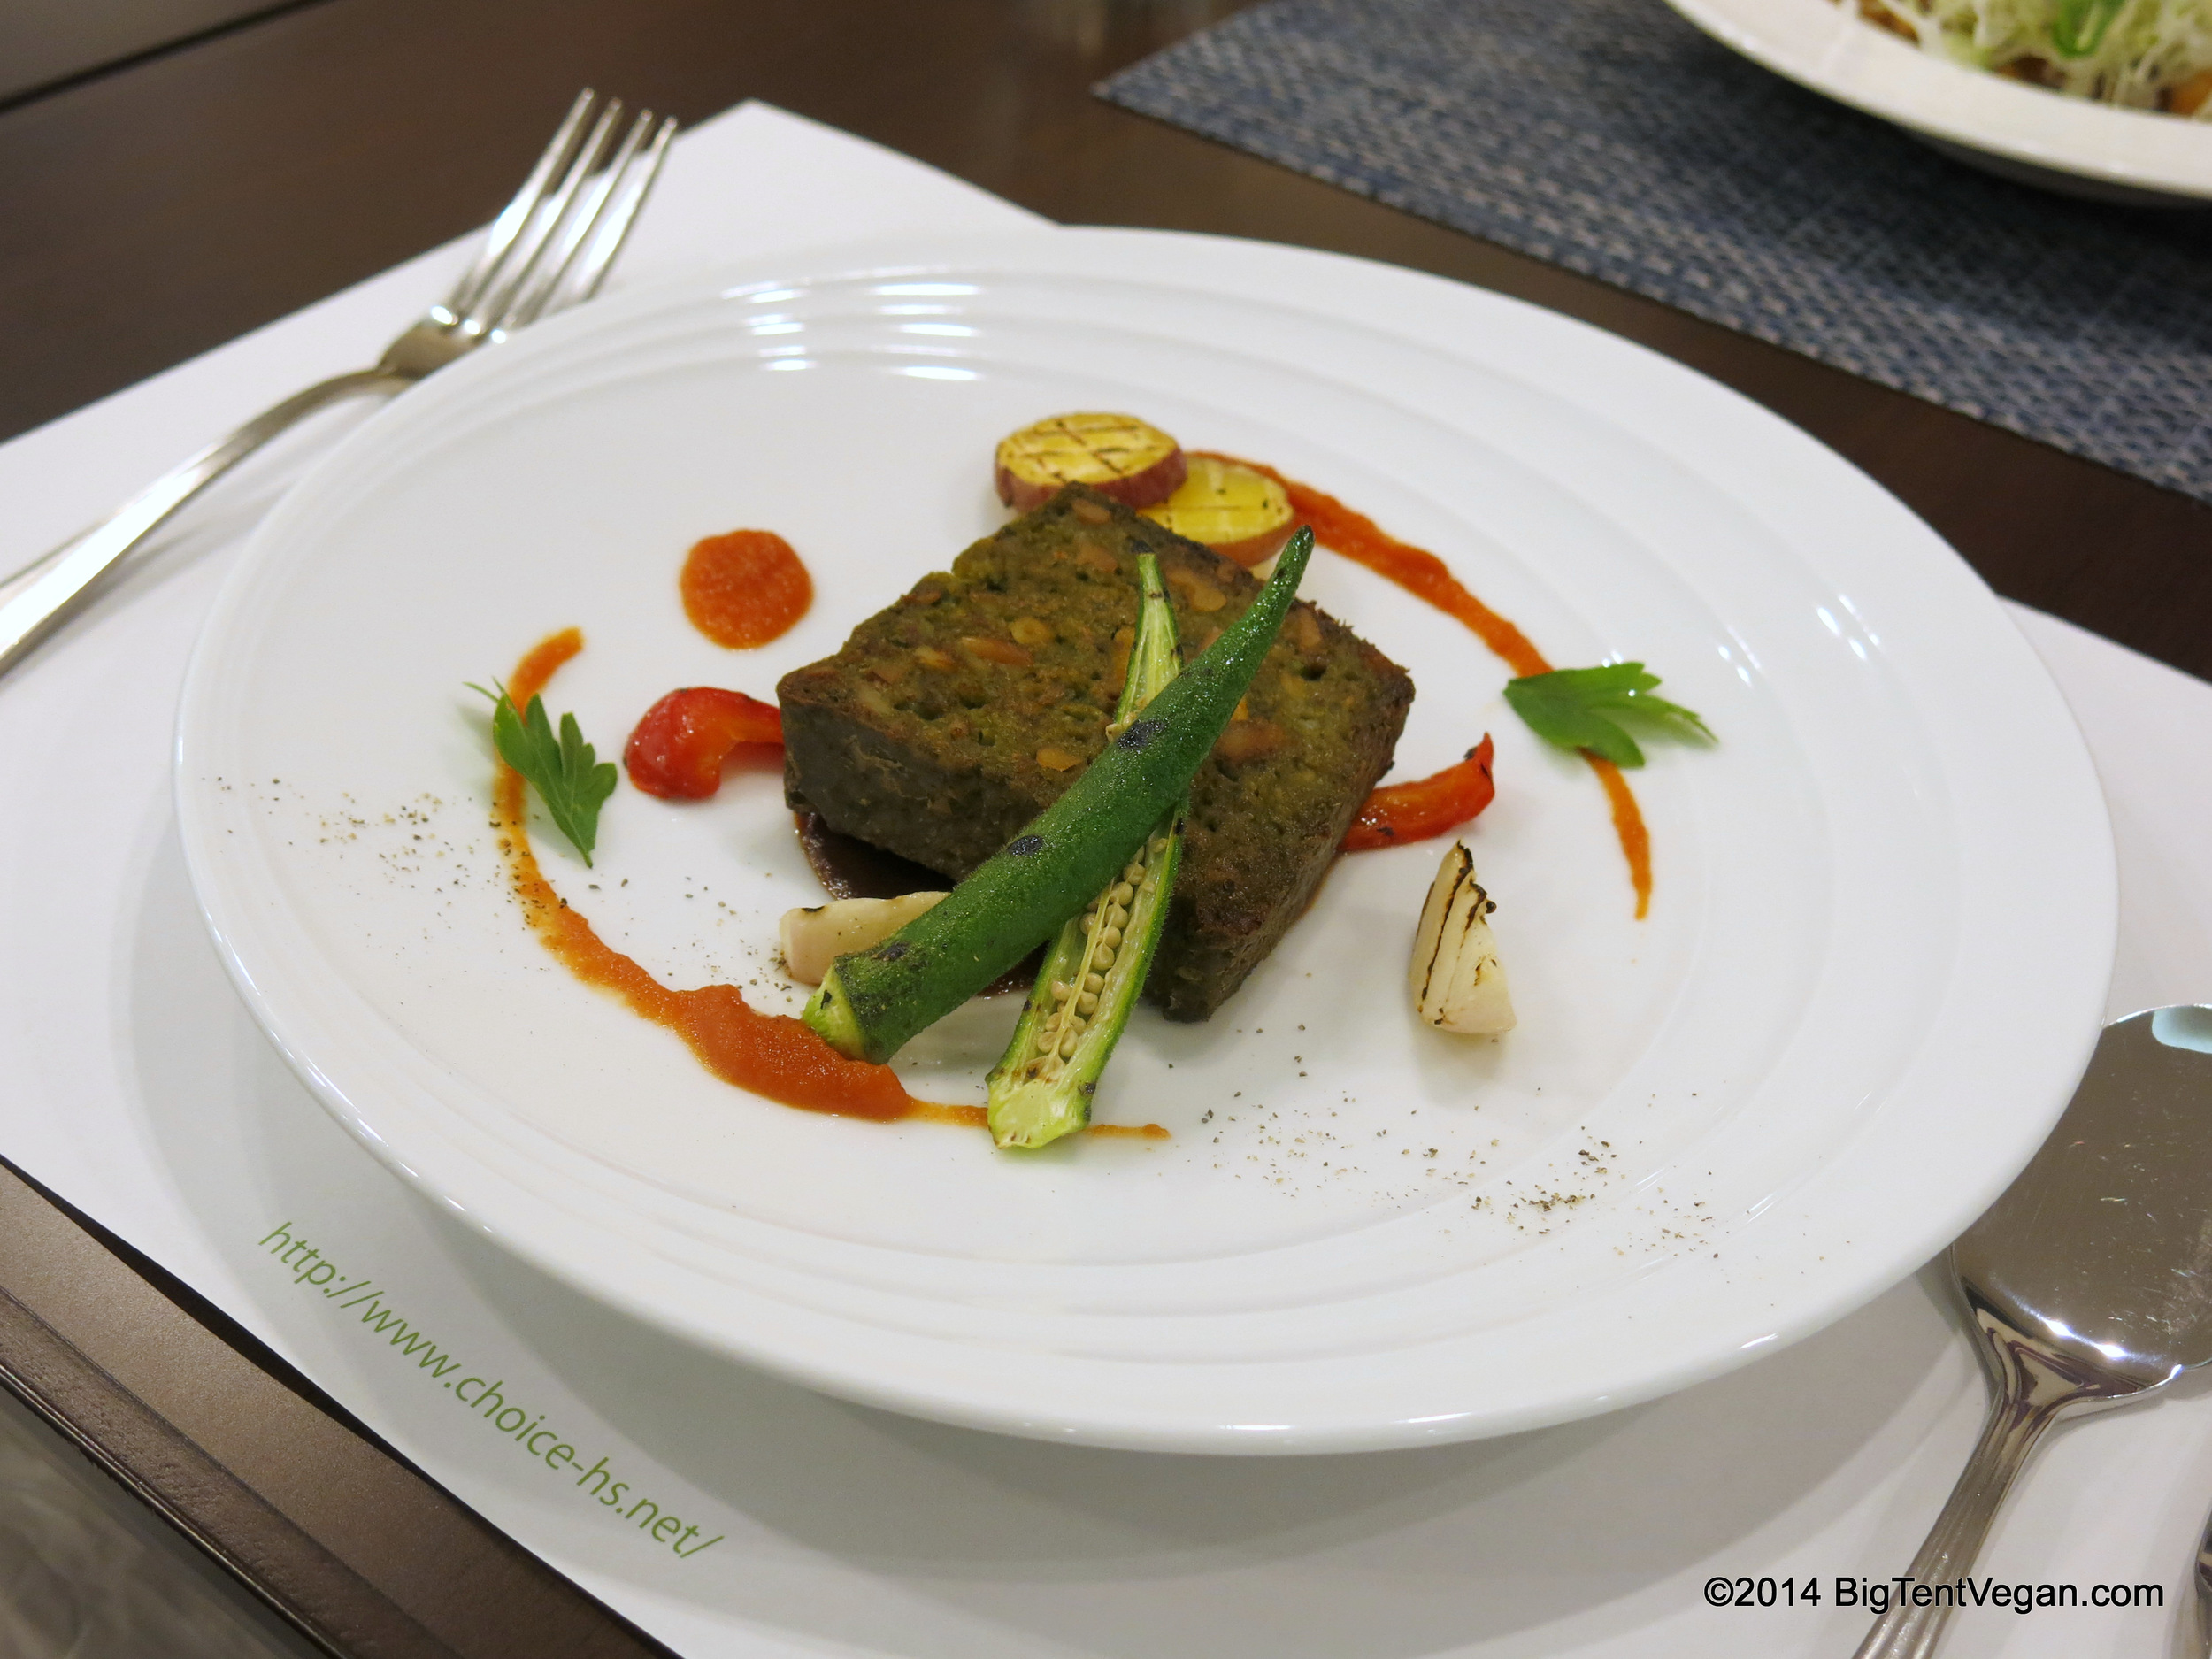 Grain Loaf with Vegetables (main dish course of the set dinner menu)